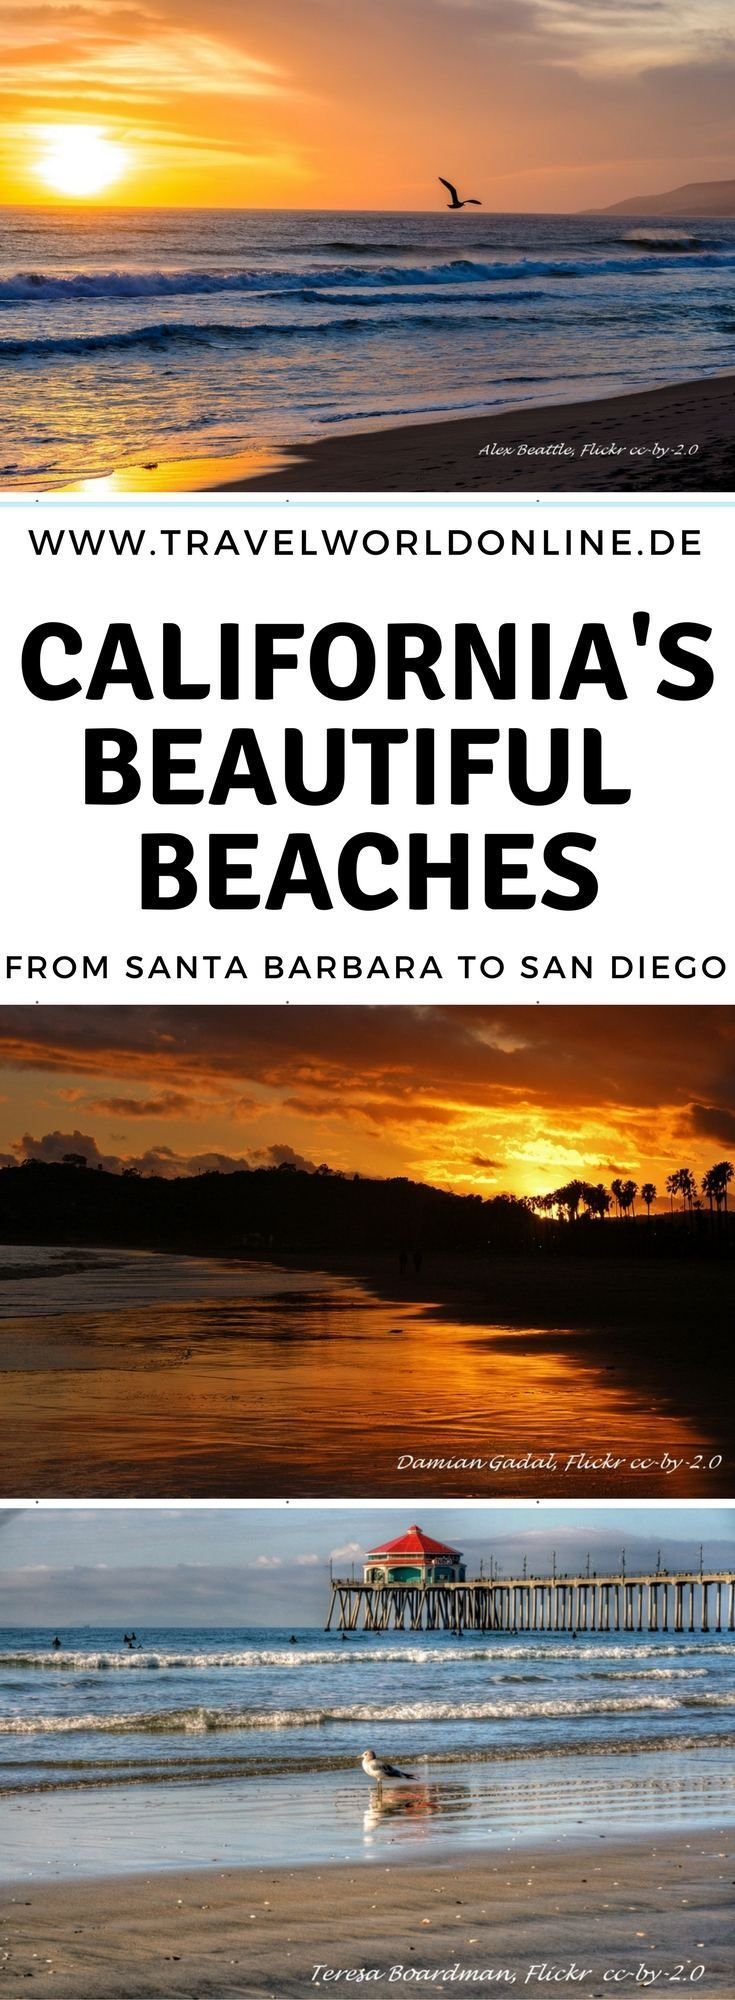 Die schönsten Strände in Kalifornien – Die Best Beaches in California